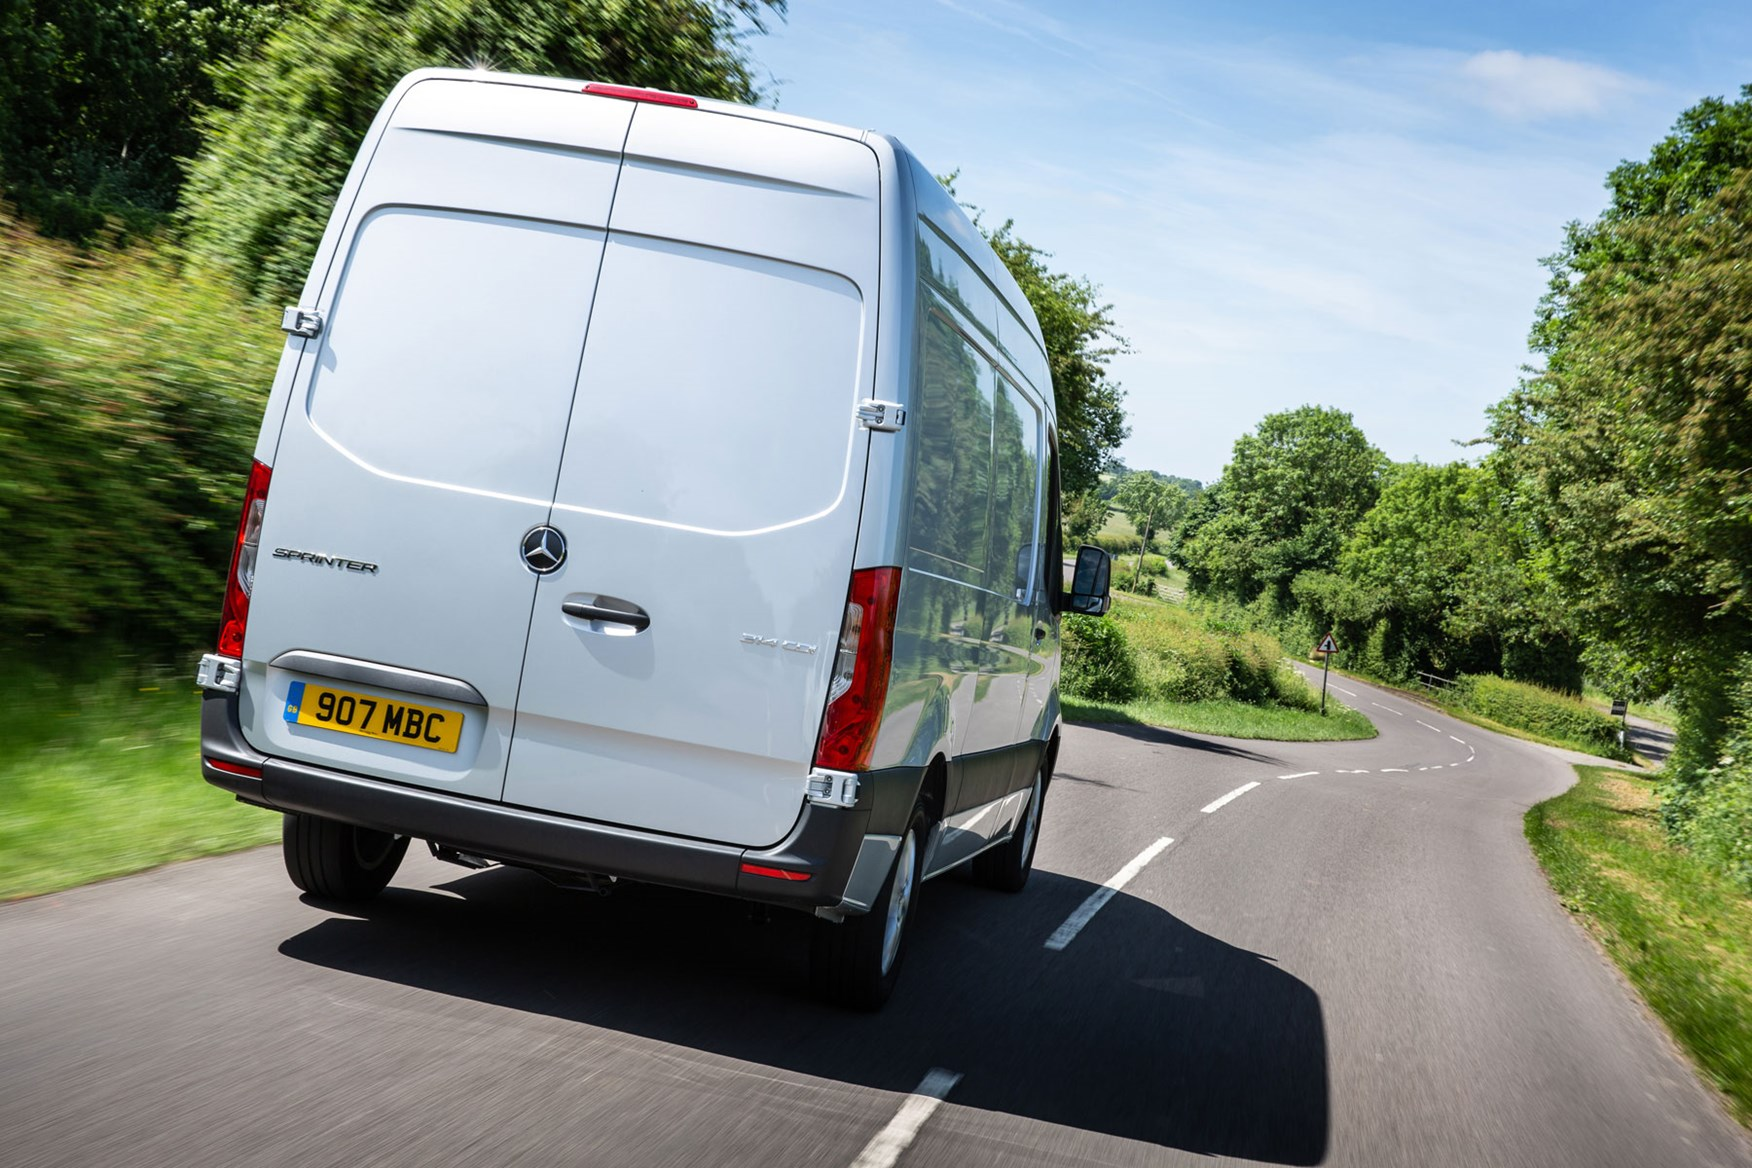 Mercedes Sprinter (2018-on), rear view, silver, UK, driving on country B-road